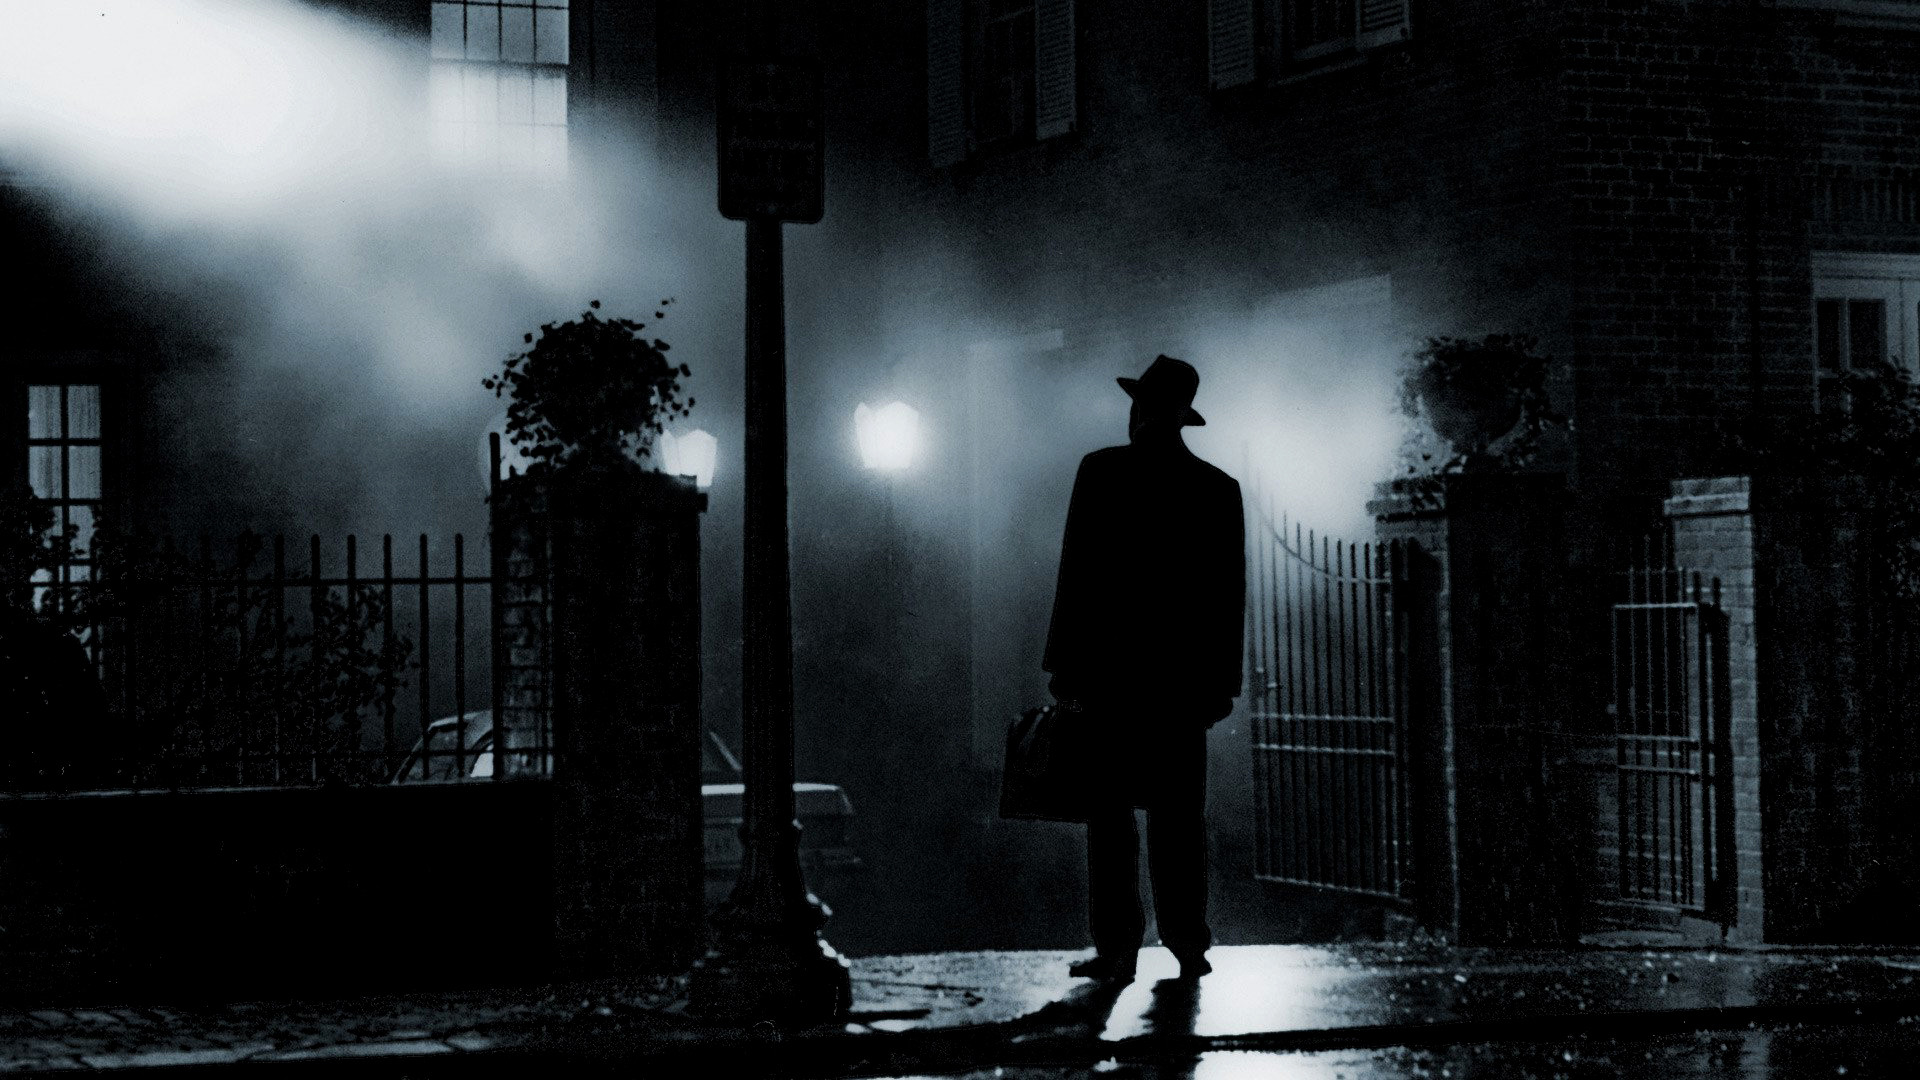 Res: 1920x1080, The Exorcist HD Wallpaper | Hintergrund |  | ID:698953 - Wallpaper  Abyss